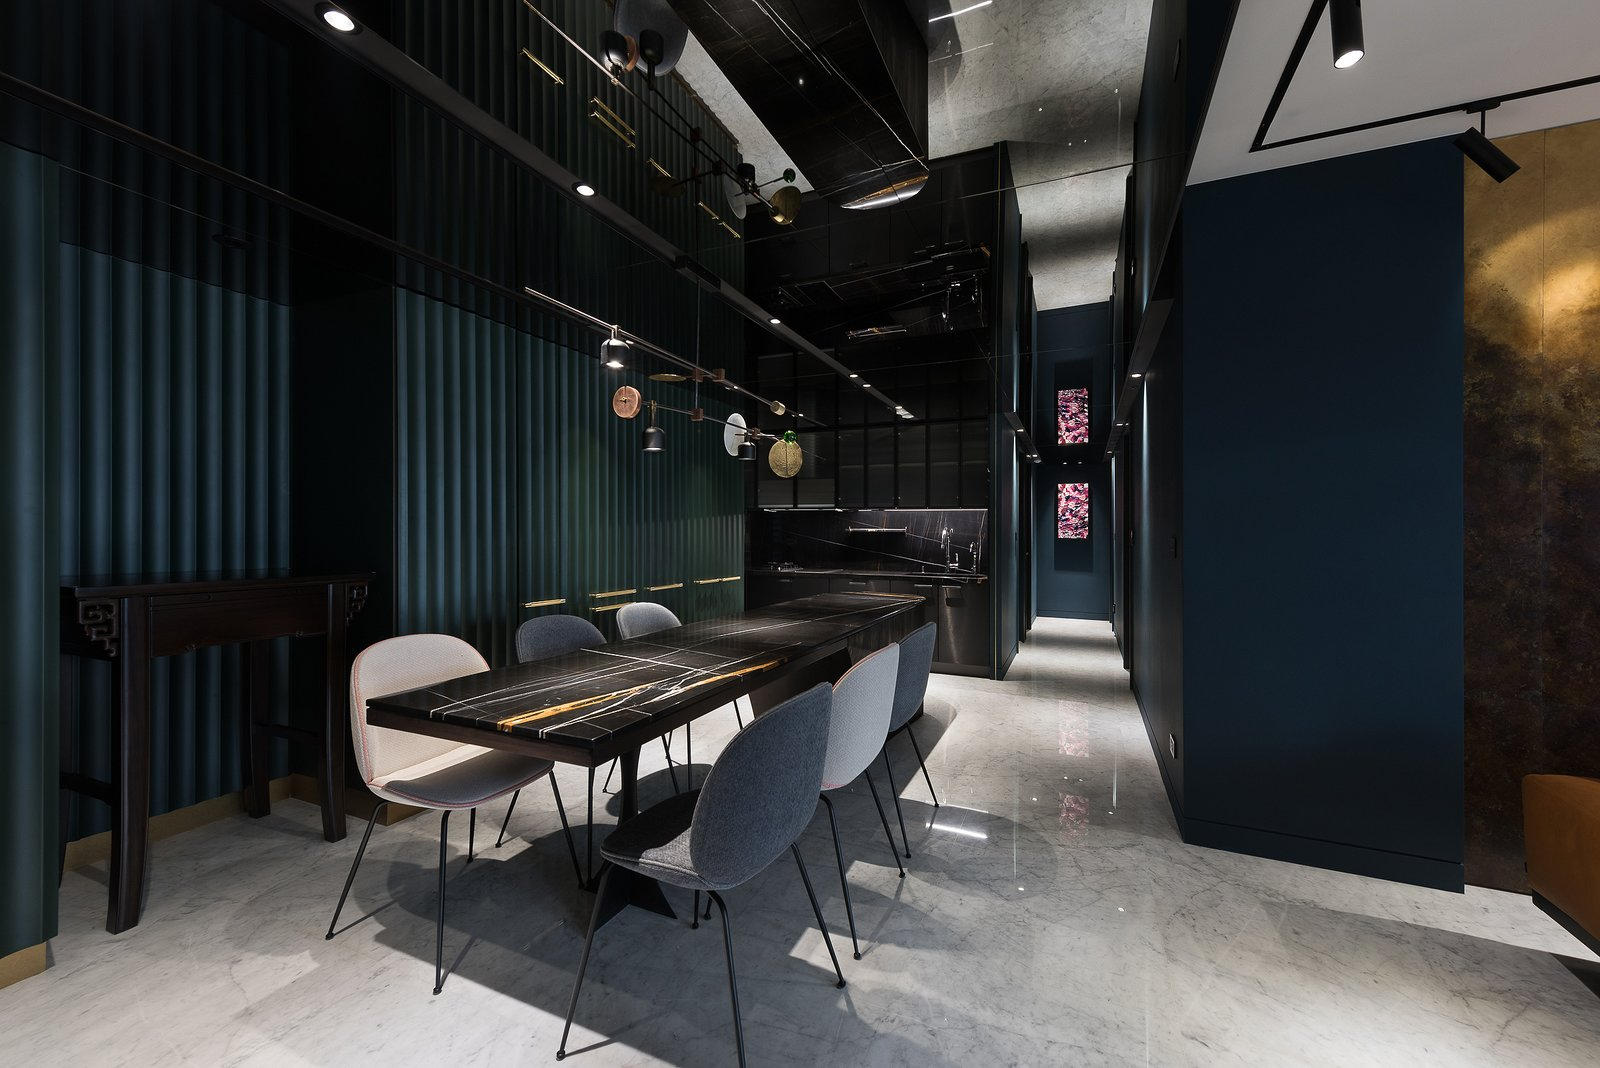 Dining Room, Ceiling Lighting, and Table Dining Room & Kitchen  Residence C.A. by W&Li Design